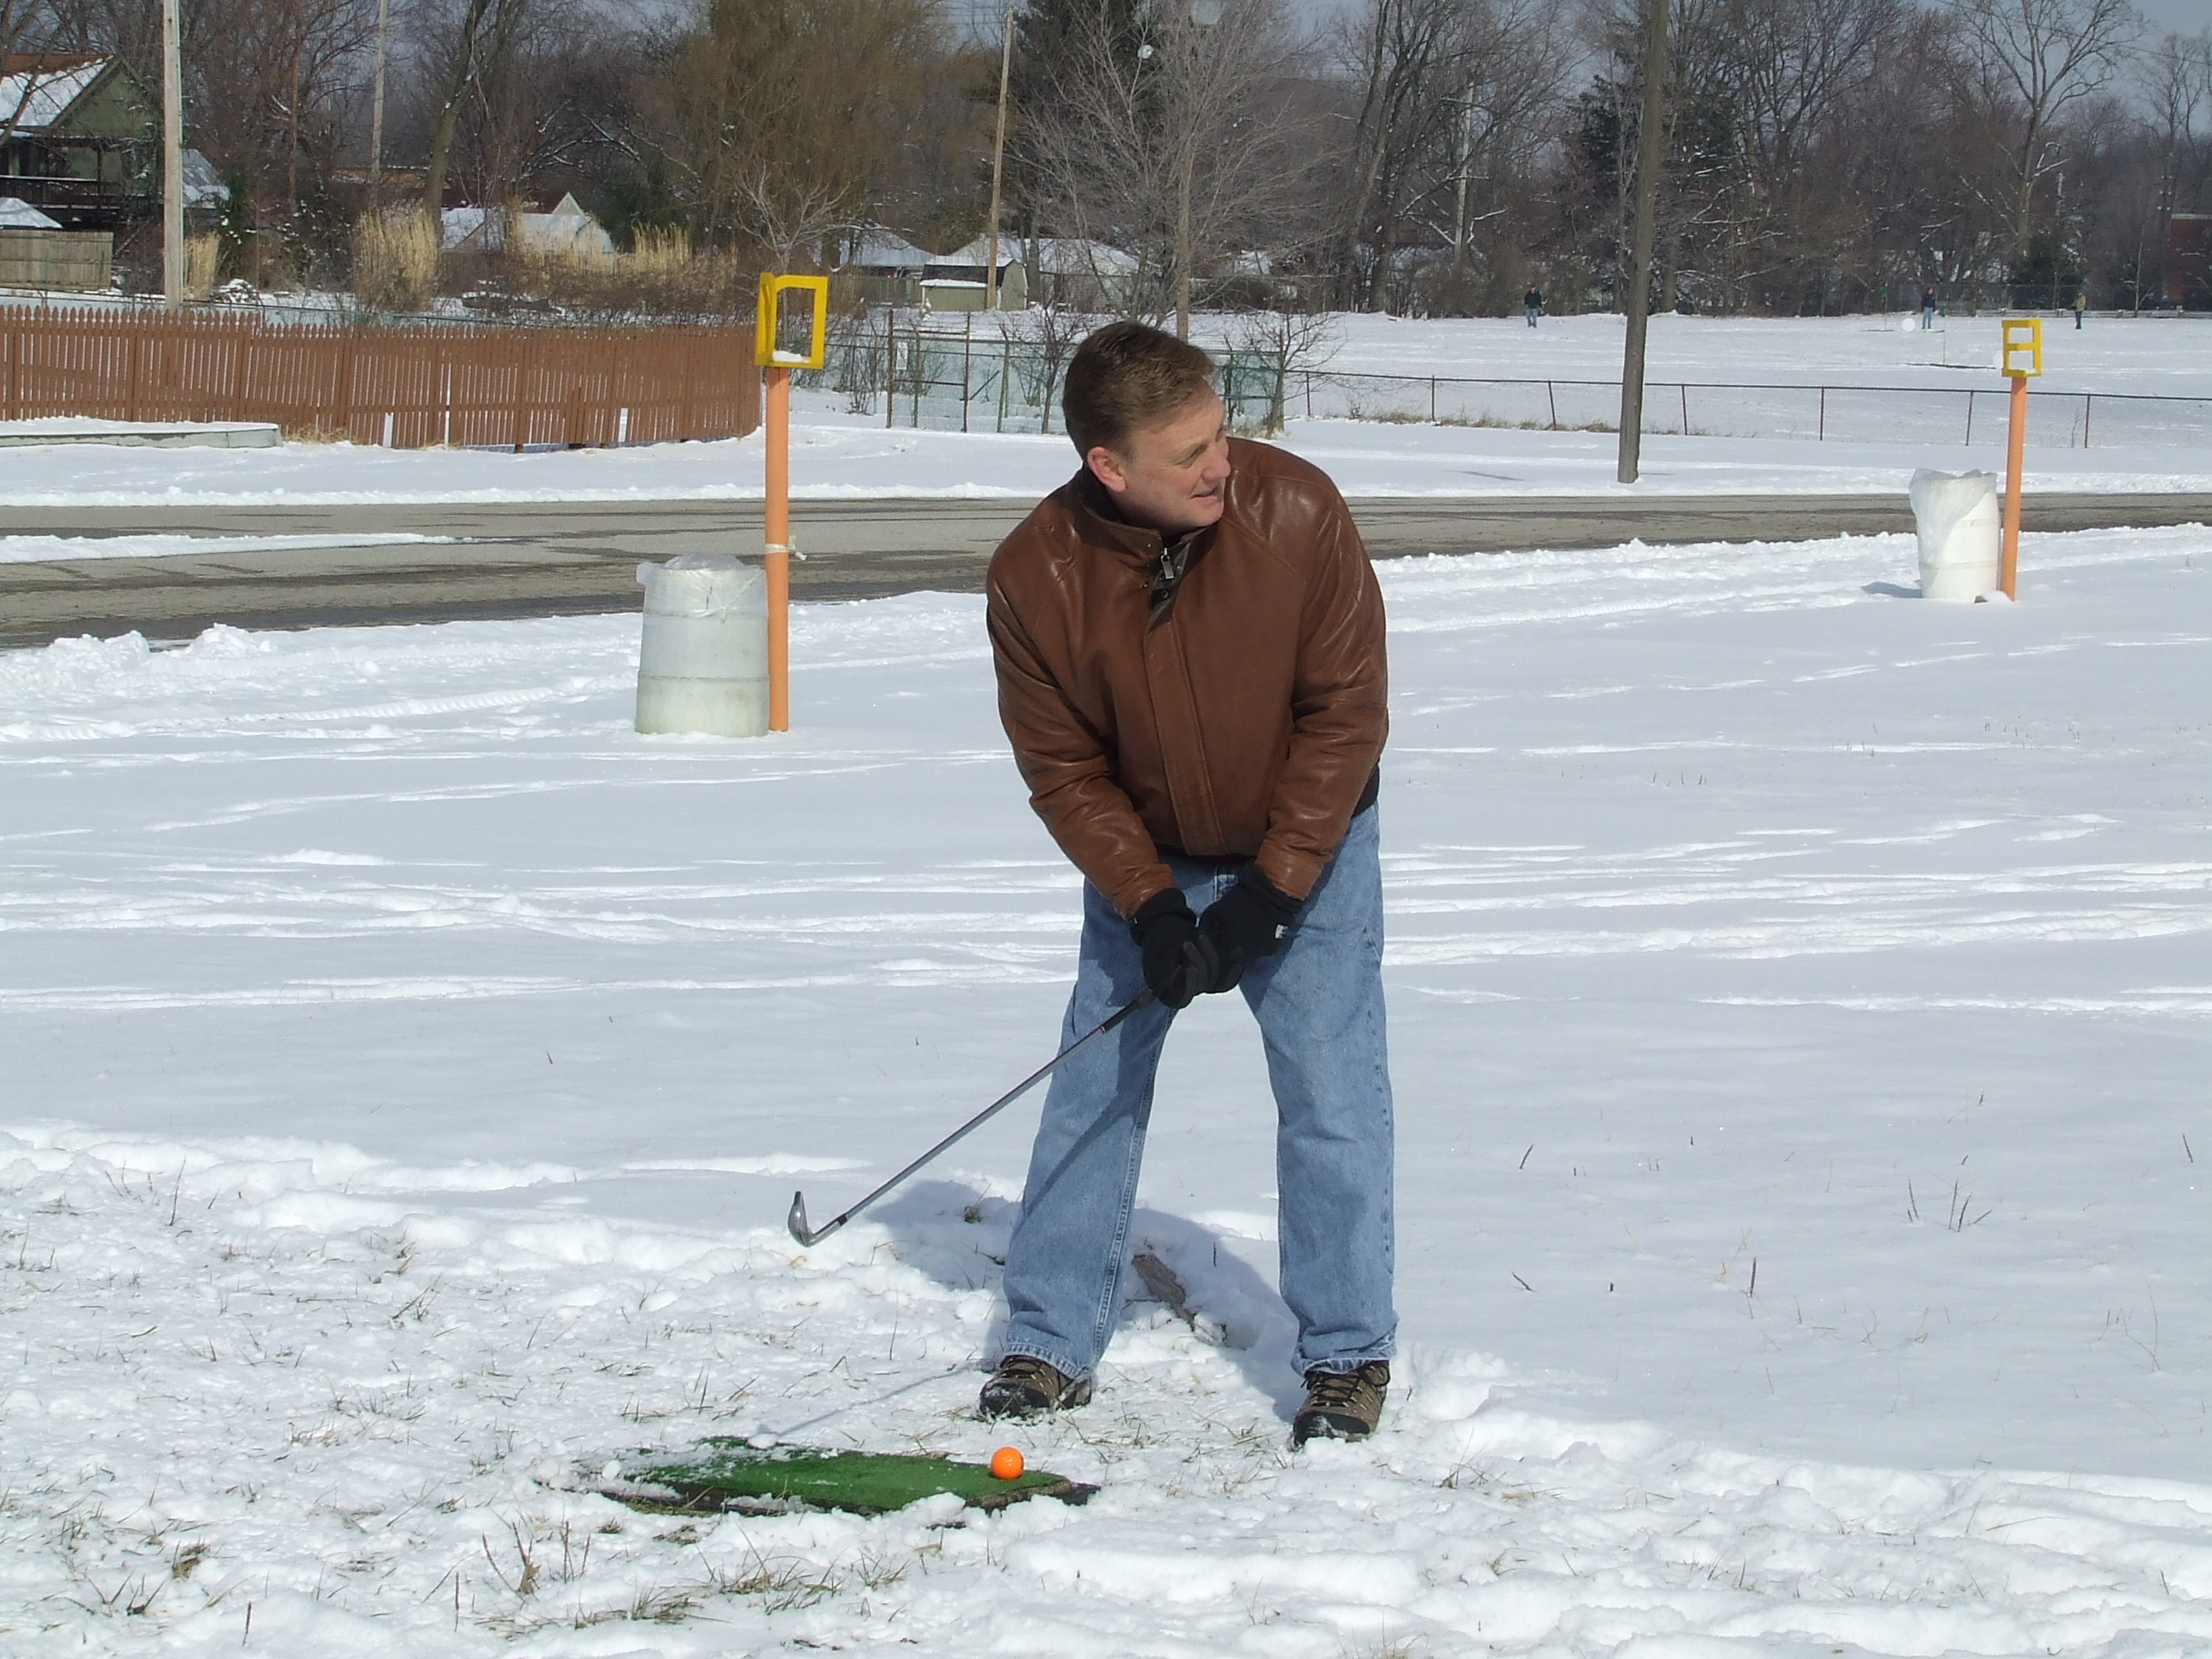 Spring Golf in Minnesota – The Art of Waiting